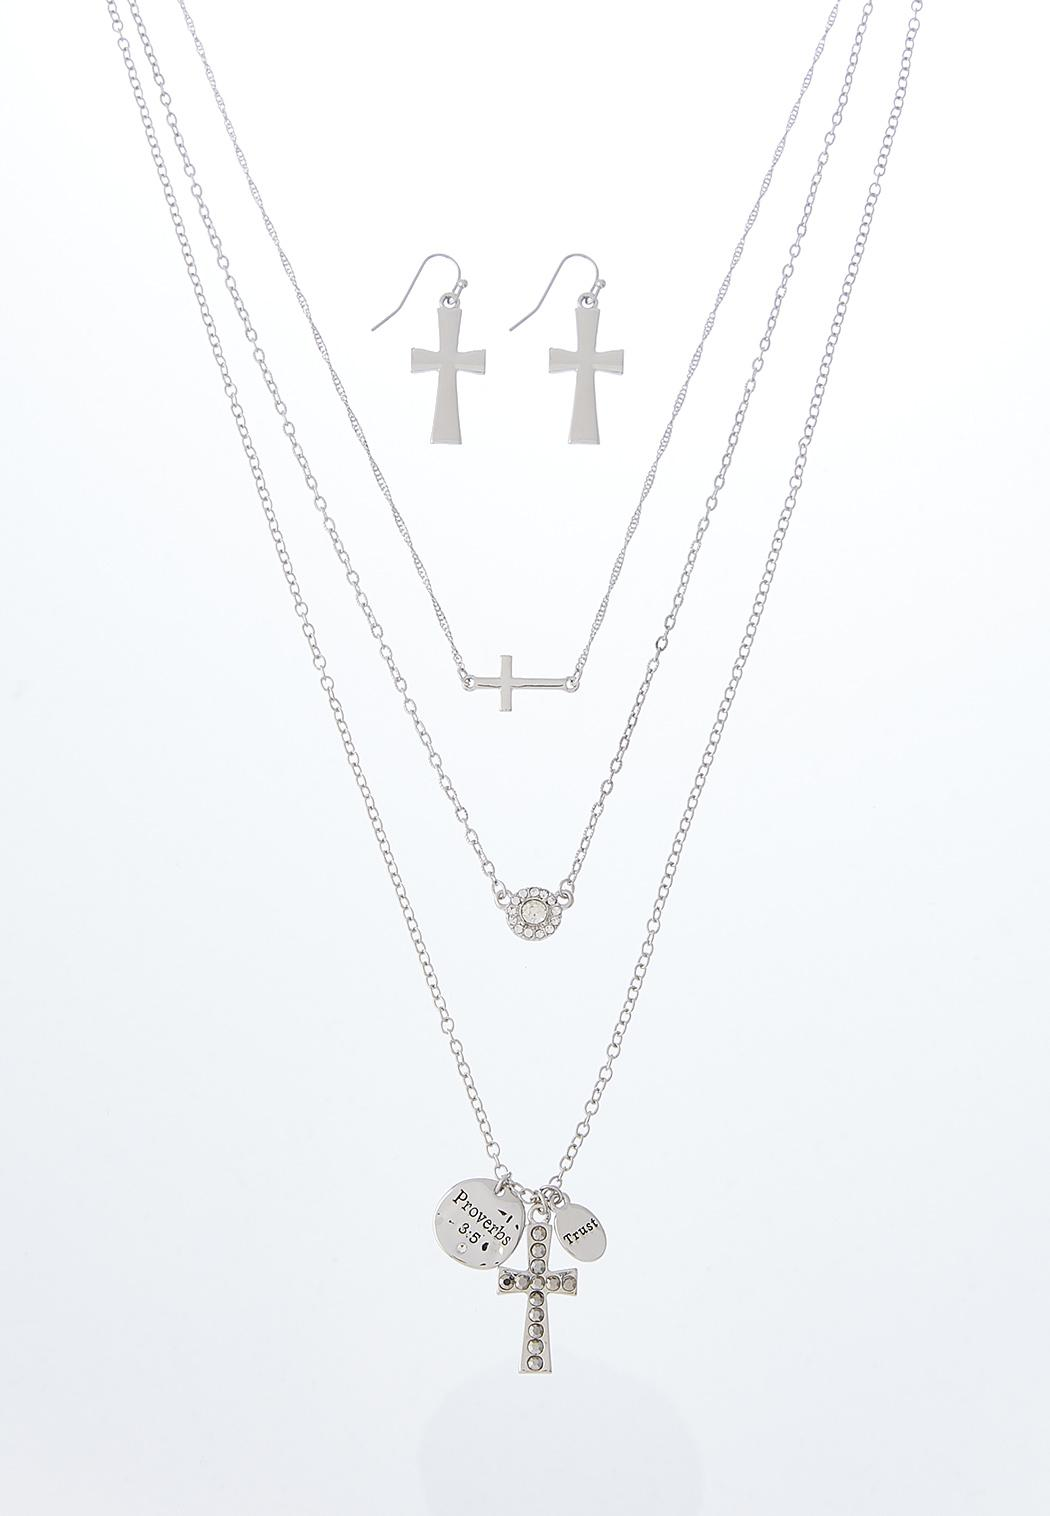 Layered Inspirational Necklace And Earring Set